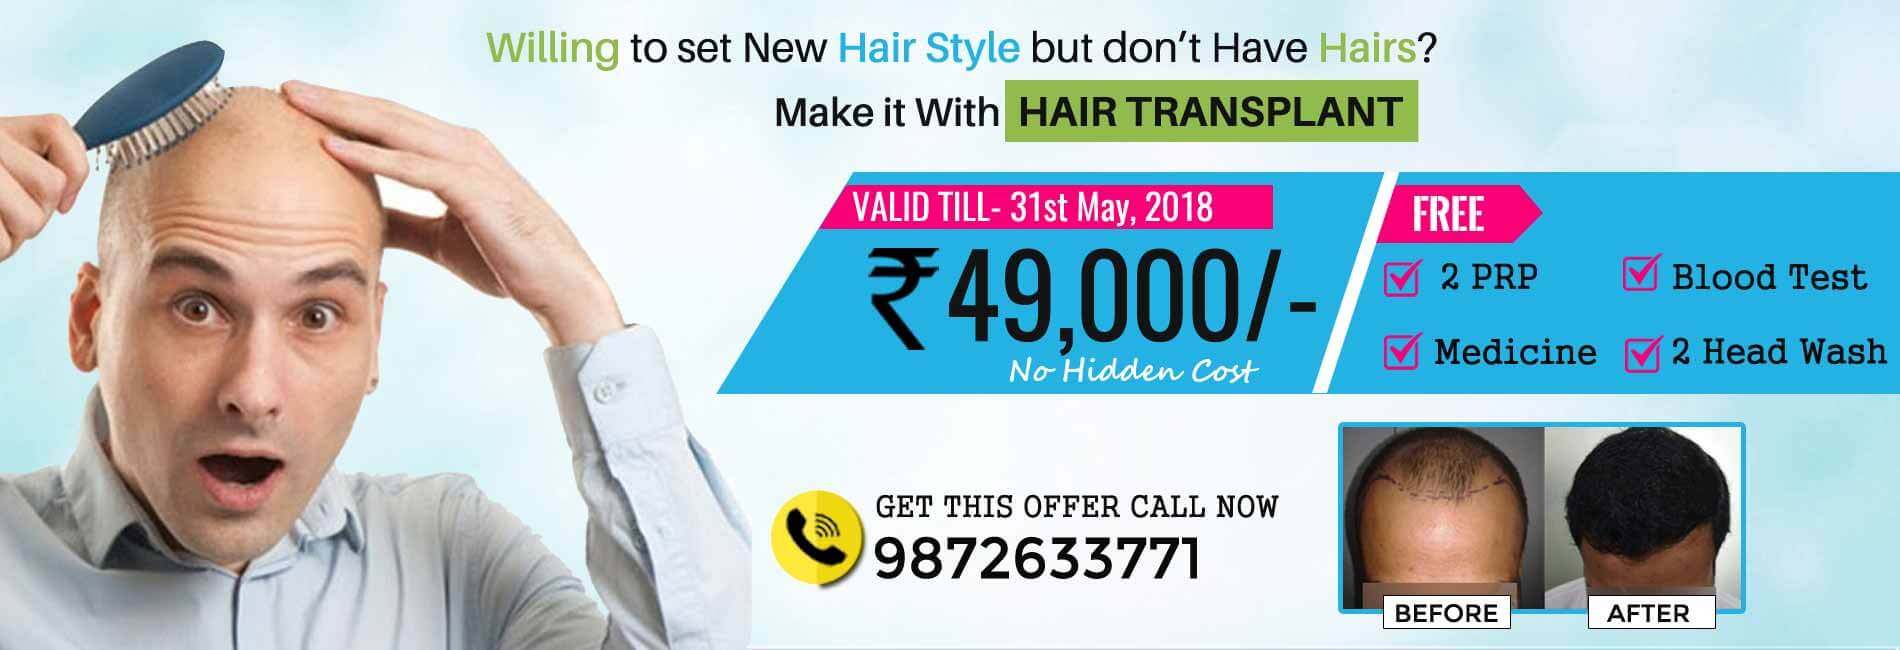 Hair transplant cost in india surat